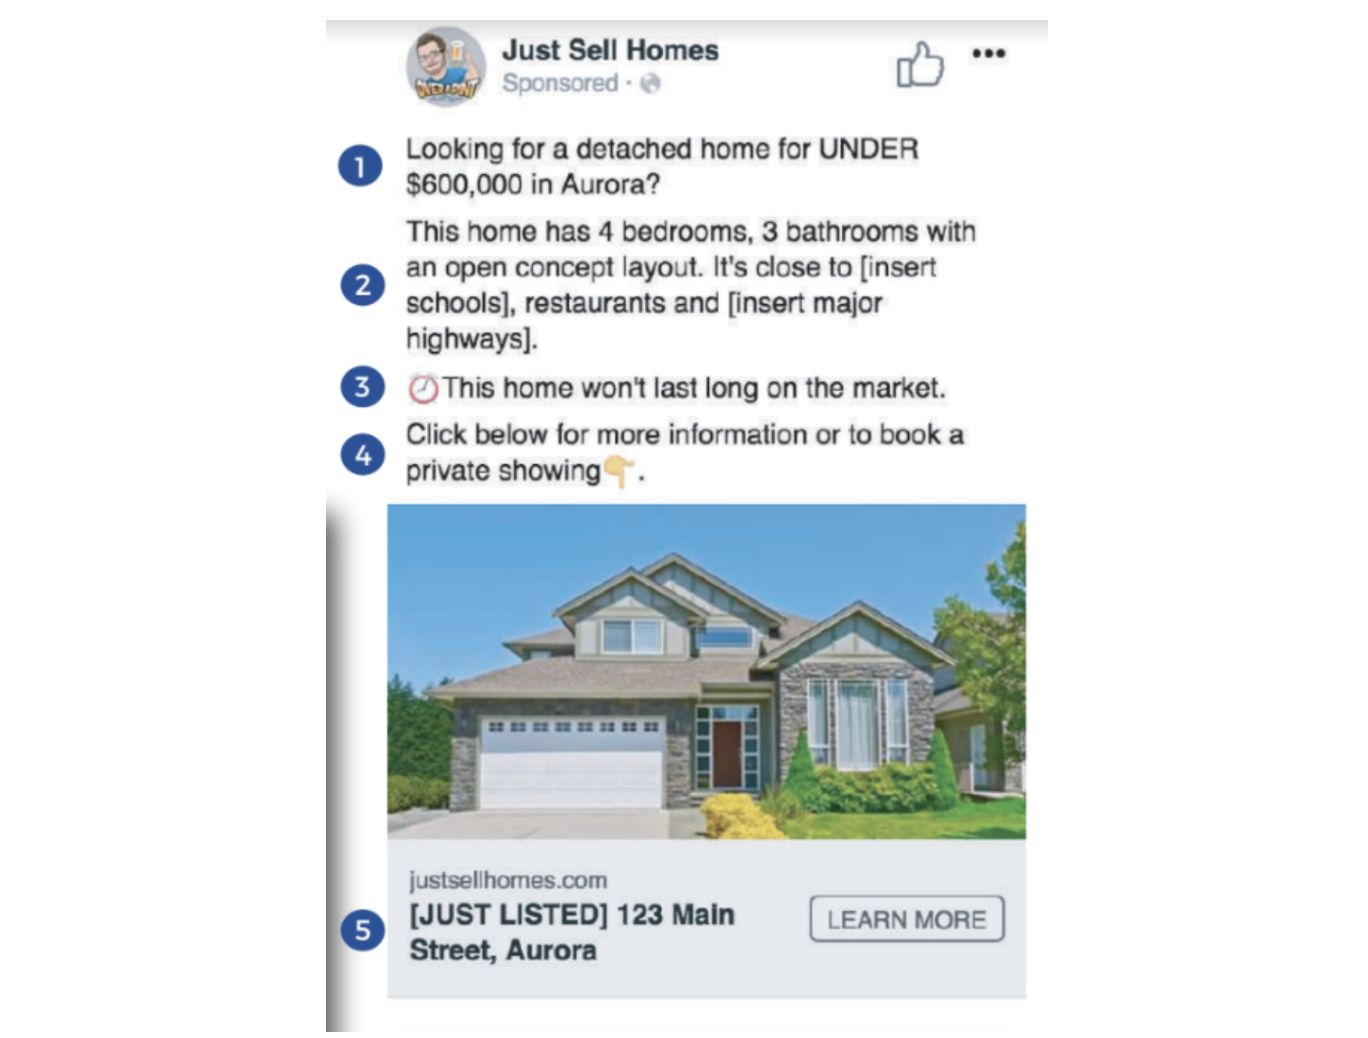 Optimize Your Real Estate Marketing With Facebook Lead Ads